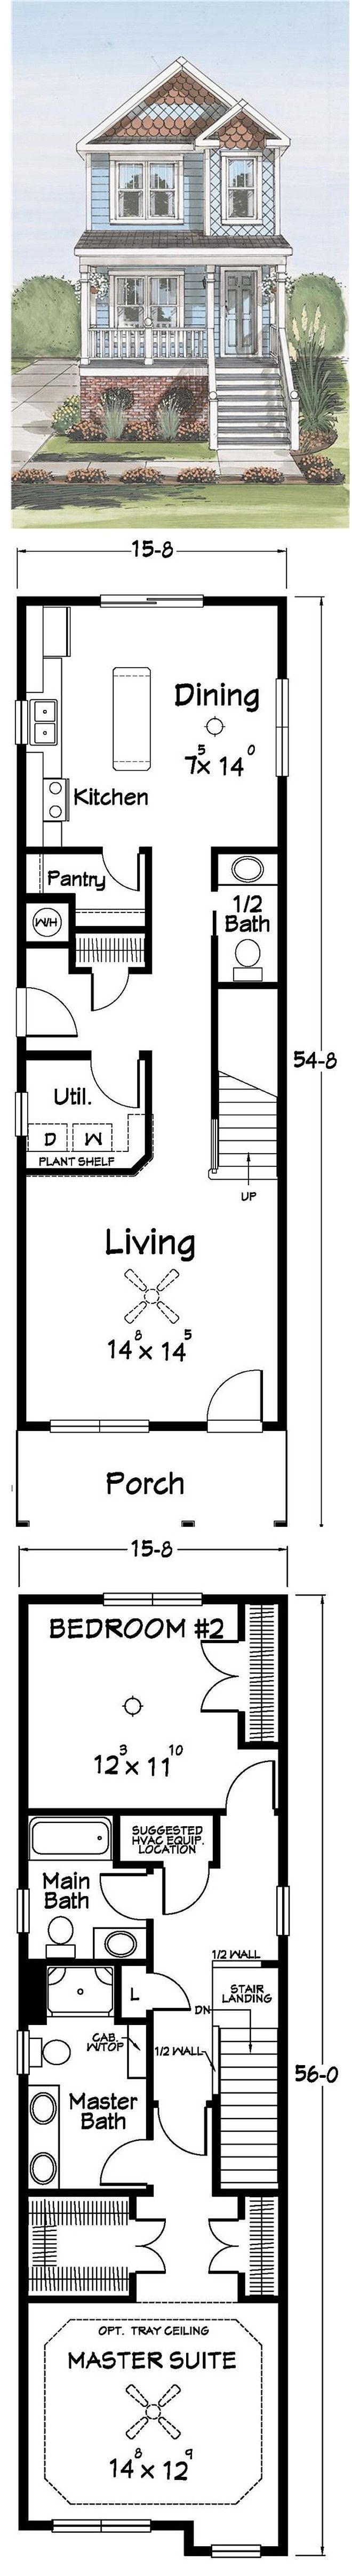 7abd97748b9736d85d9ee113e4726401  narrow lot house plans small two story house plans cottages - View Small Lot House Plans Two Story  PNG